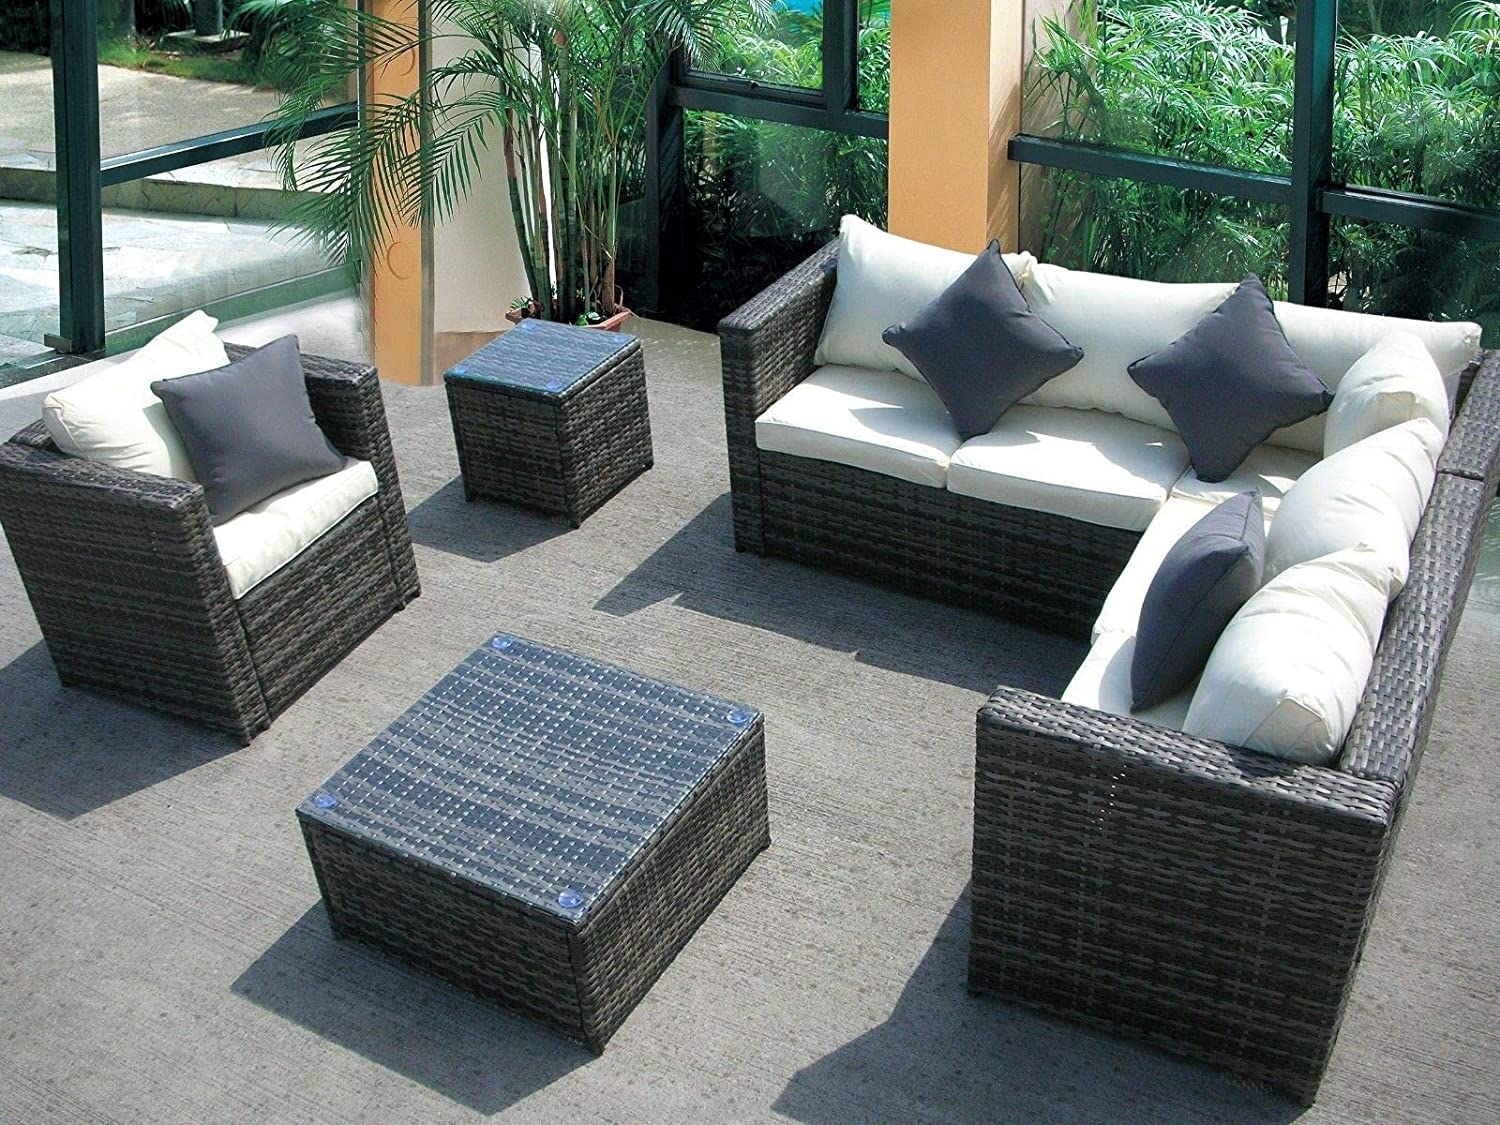 UK Leisure World - Conjunto de muebles de jardín de mimbre ...